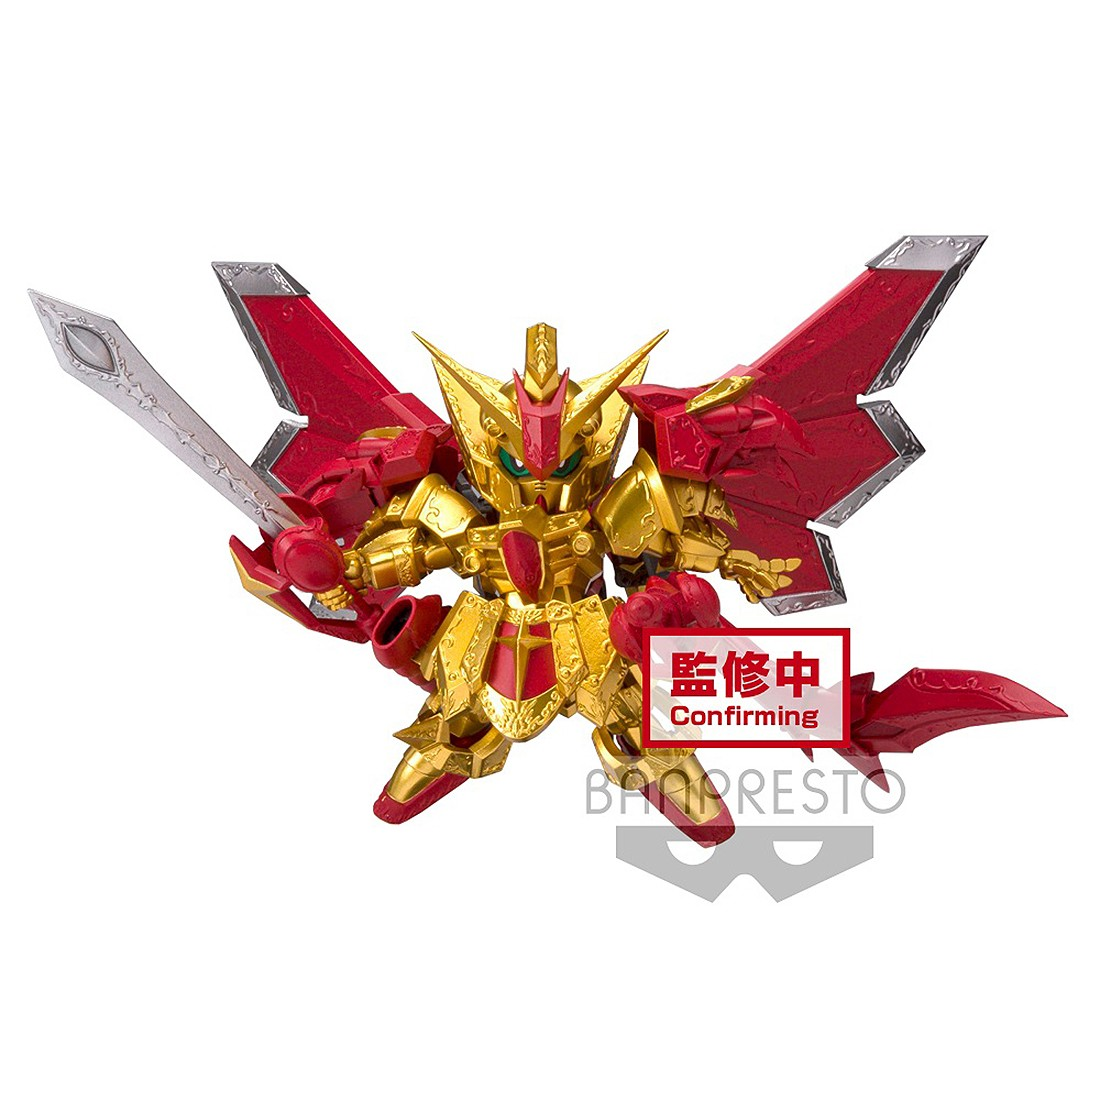 PREORDER - Banpresto SD Gundam Superior Dragon Knight Of Light Figure (gold)